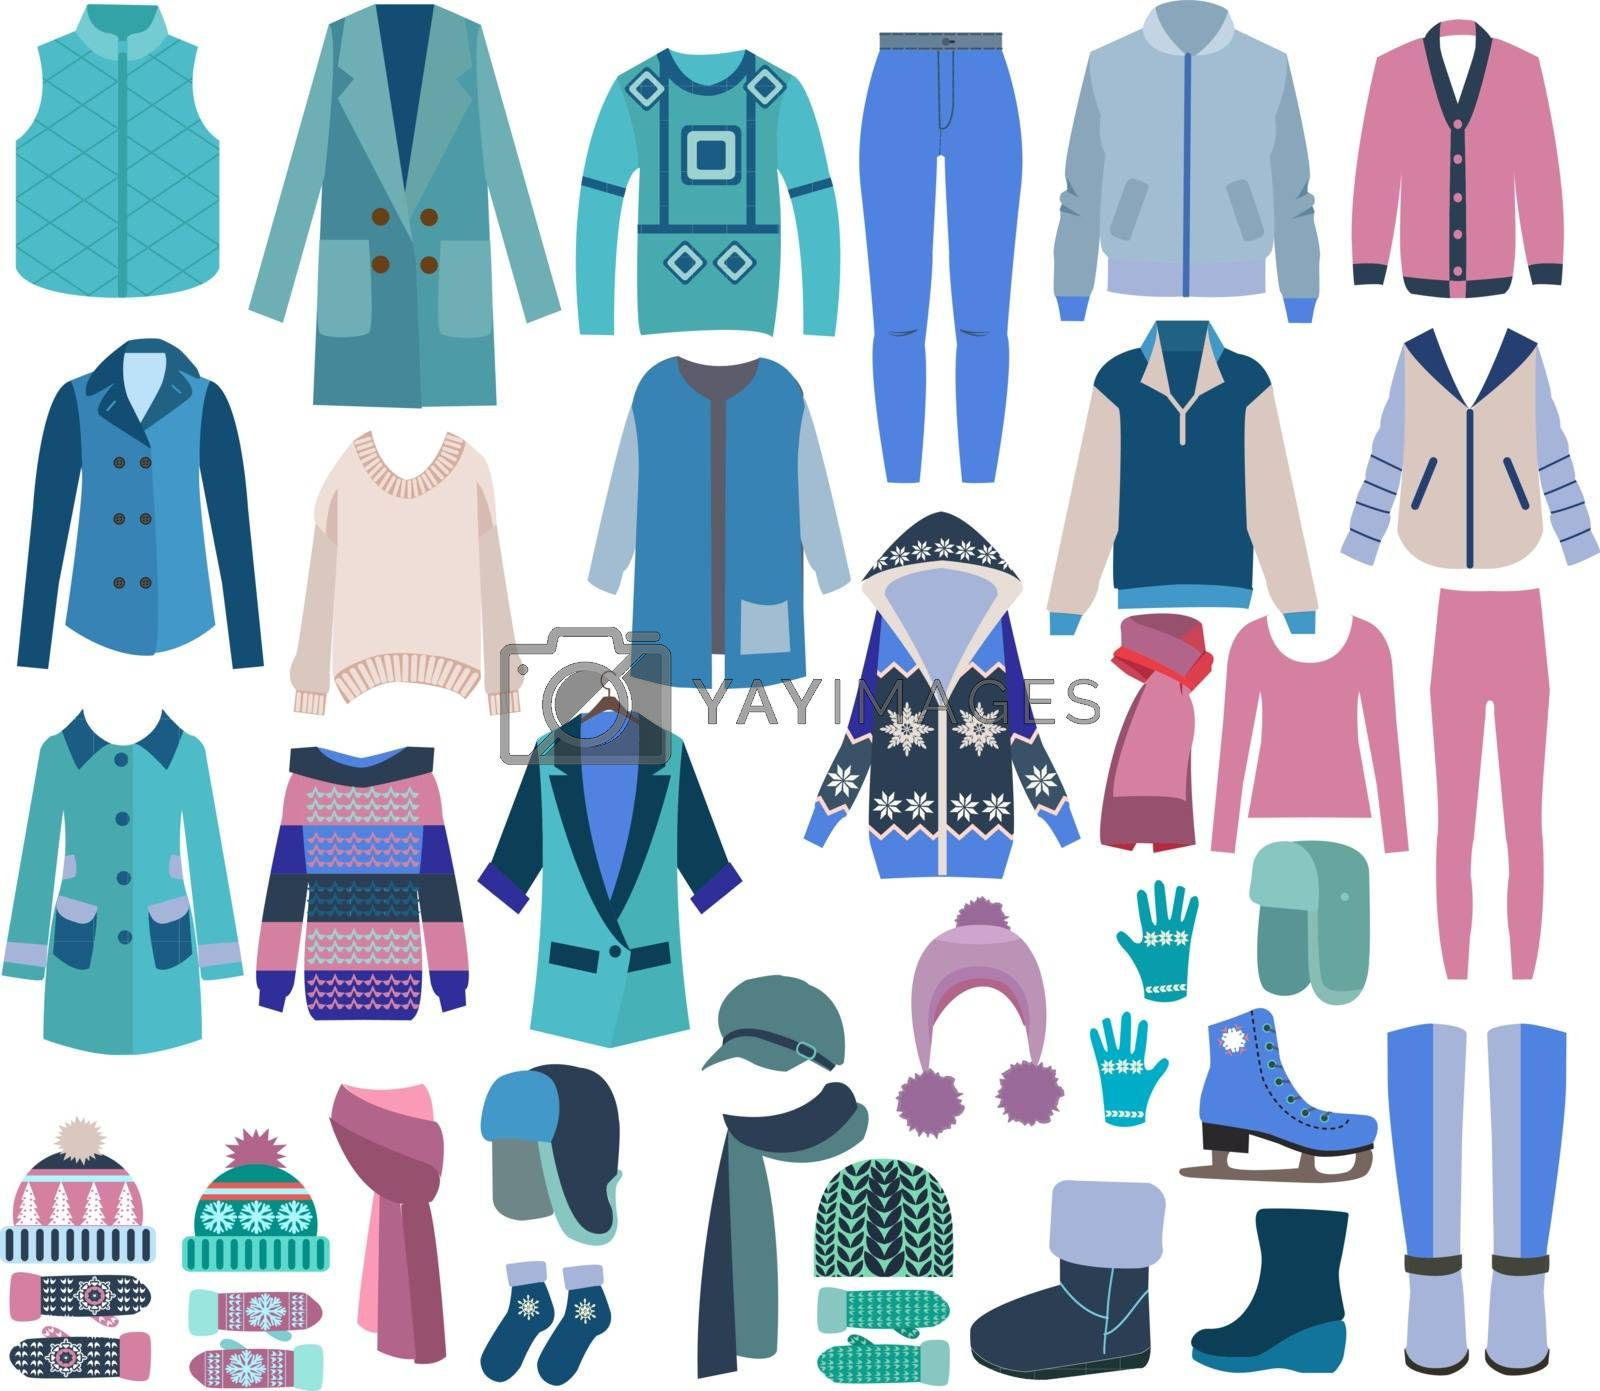 Winter Clothes and Collection of Shoes, knitted Accessories. by Margolana